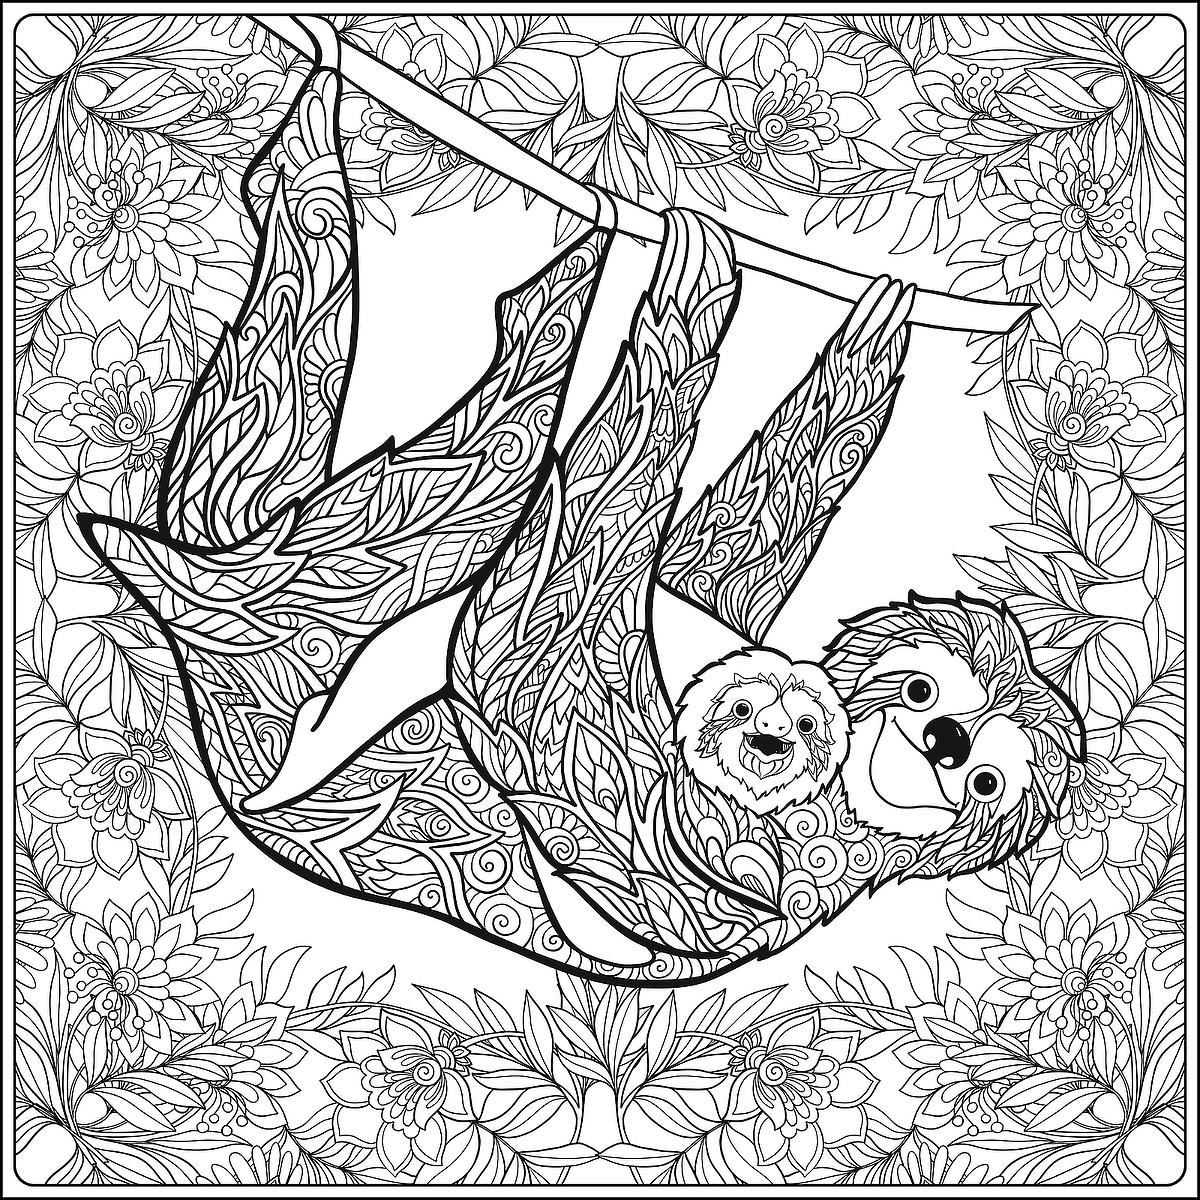 sloth coloring page printable sloth coloring pages gallery free coloring sheets page sloth coloring